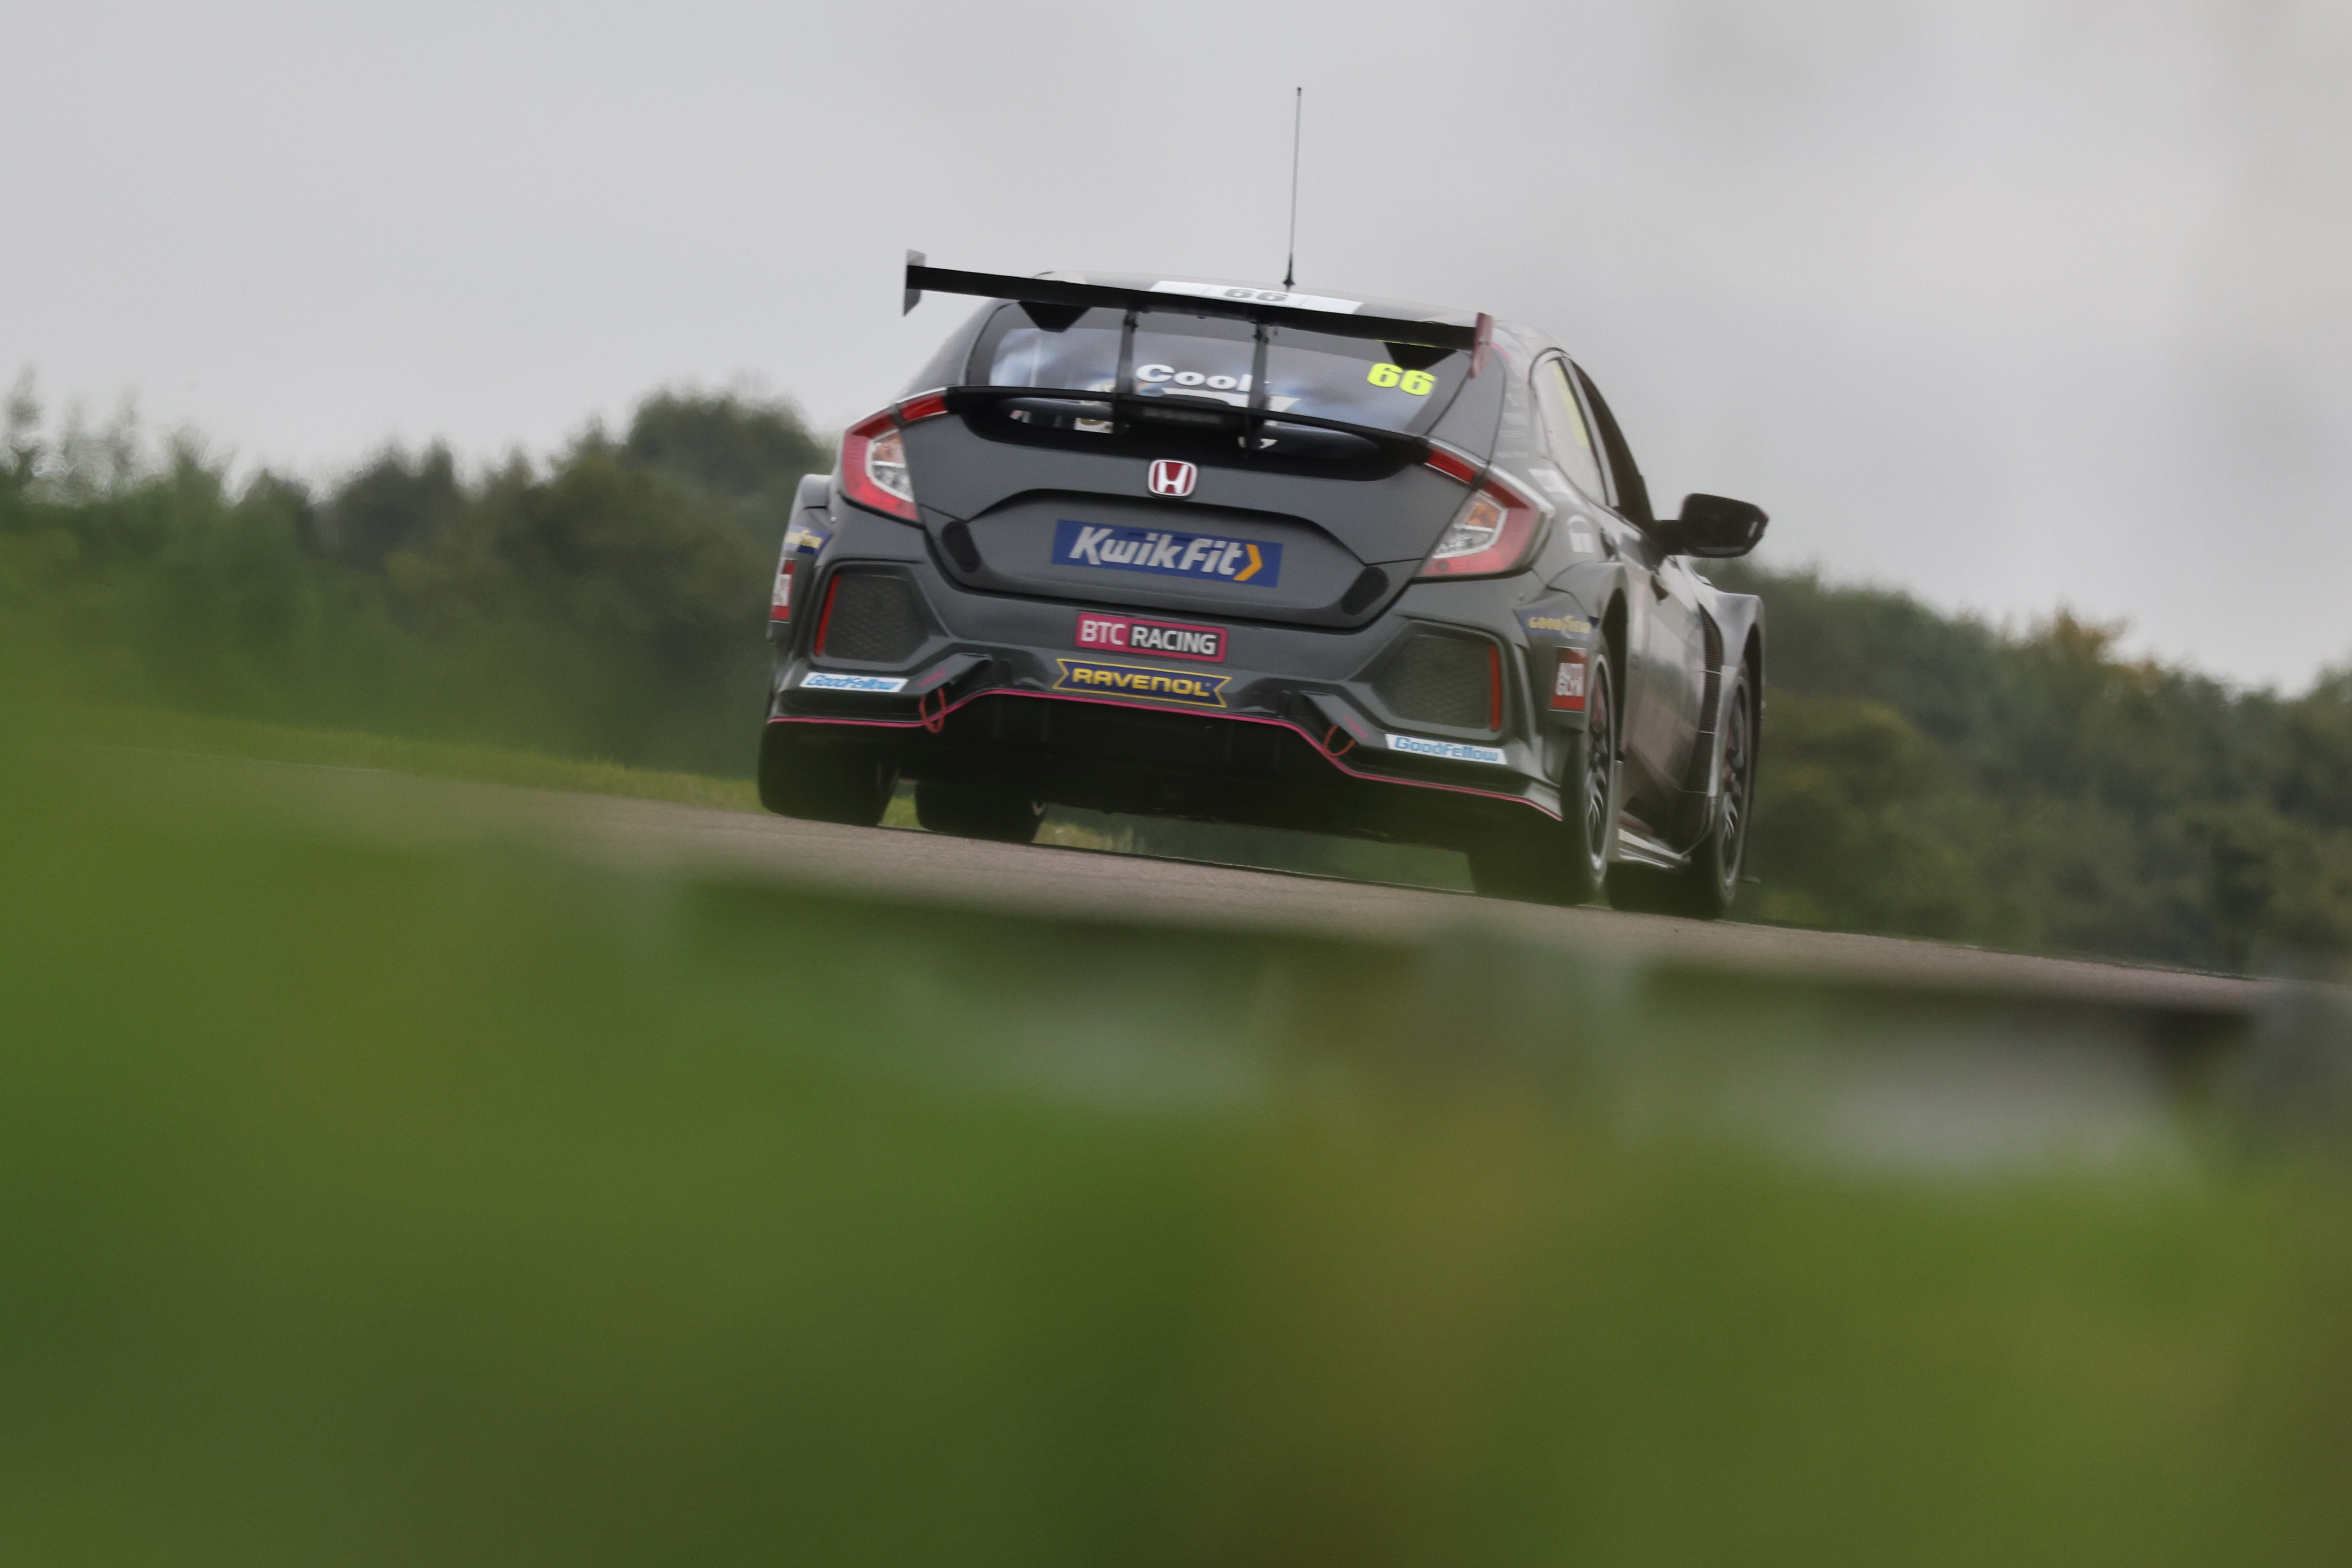 Cook topped shortened first session after red flag for Jelley's crash